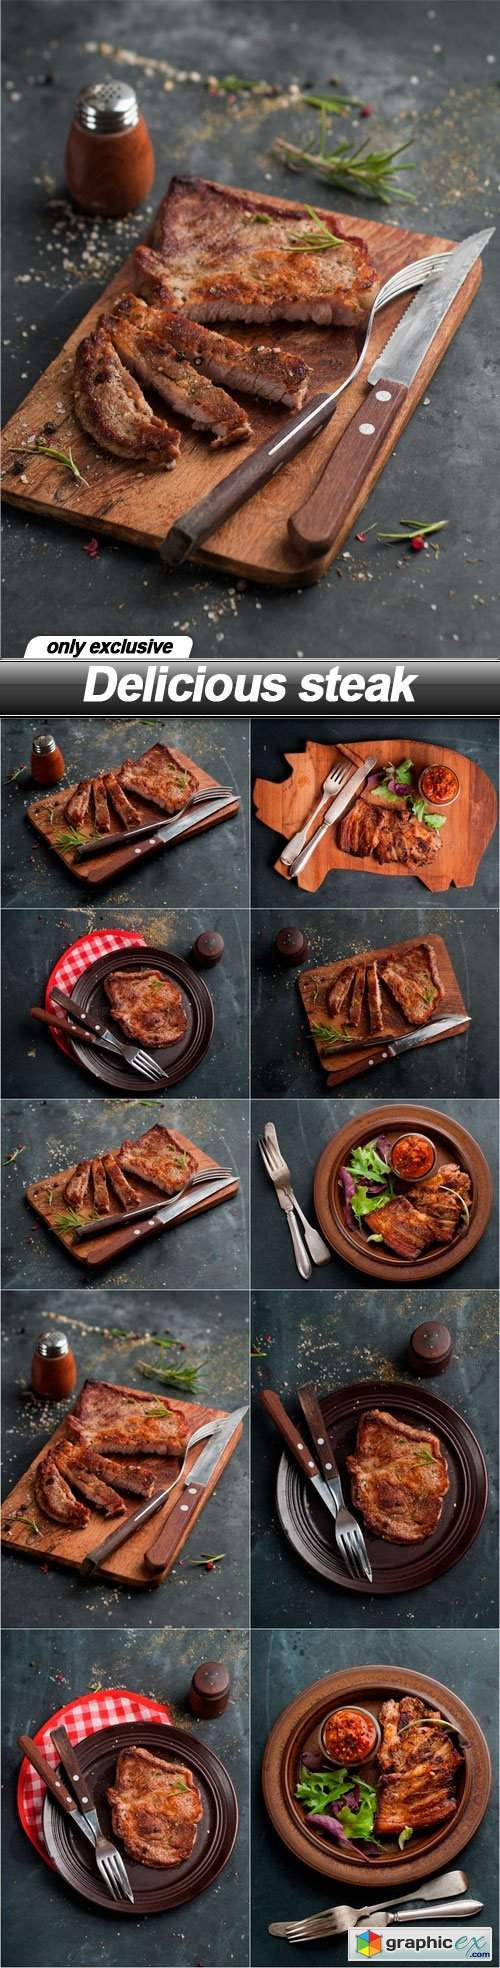 Delicious steak - 10 UHQ JPEG